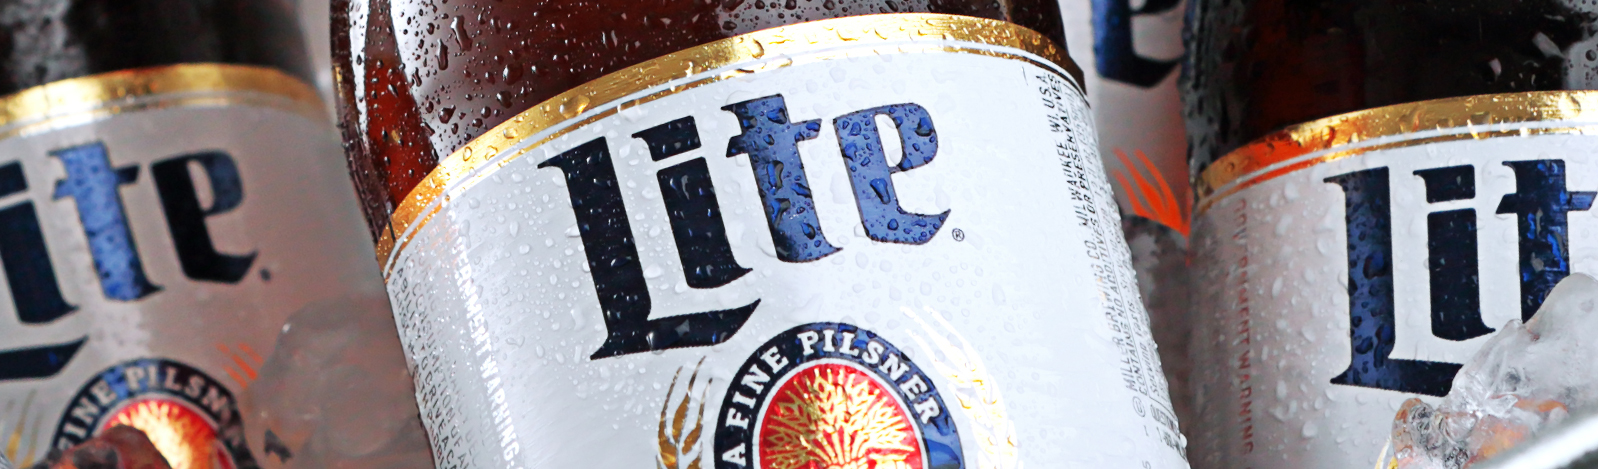 Cut and stack labels: Miller Lite label